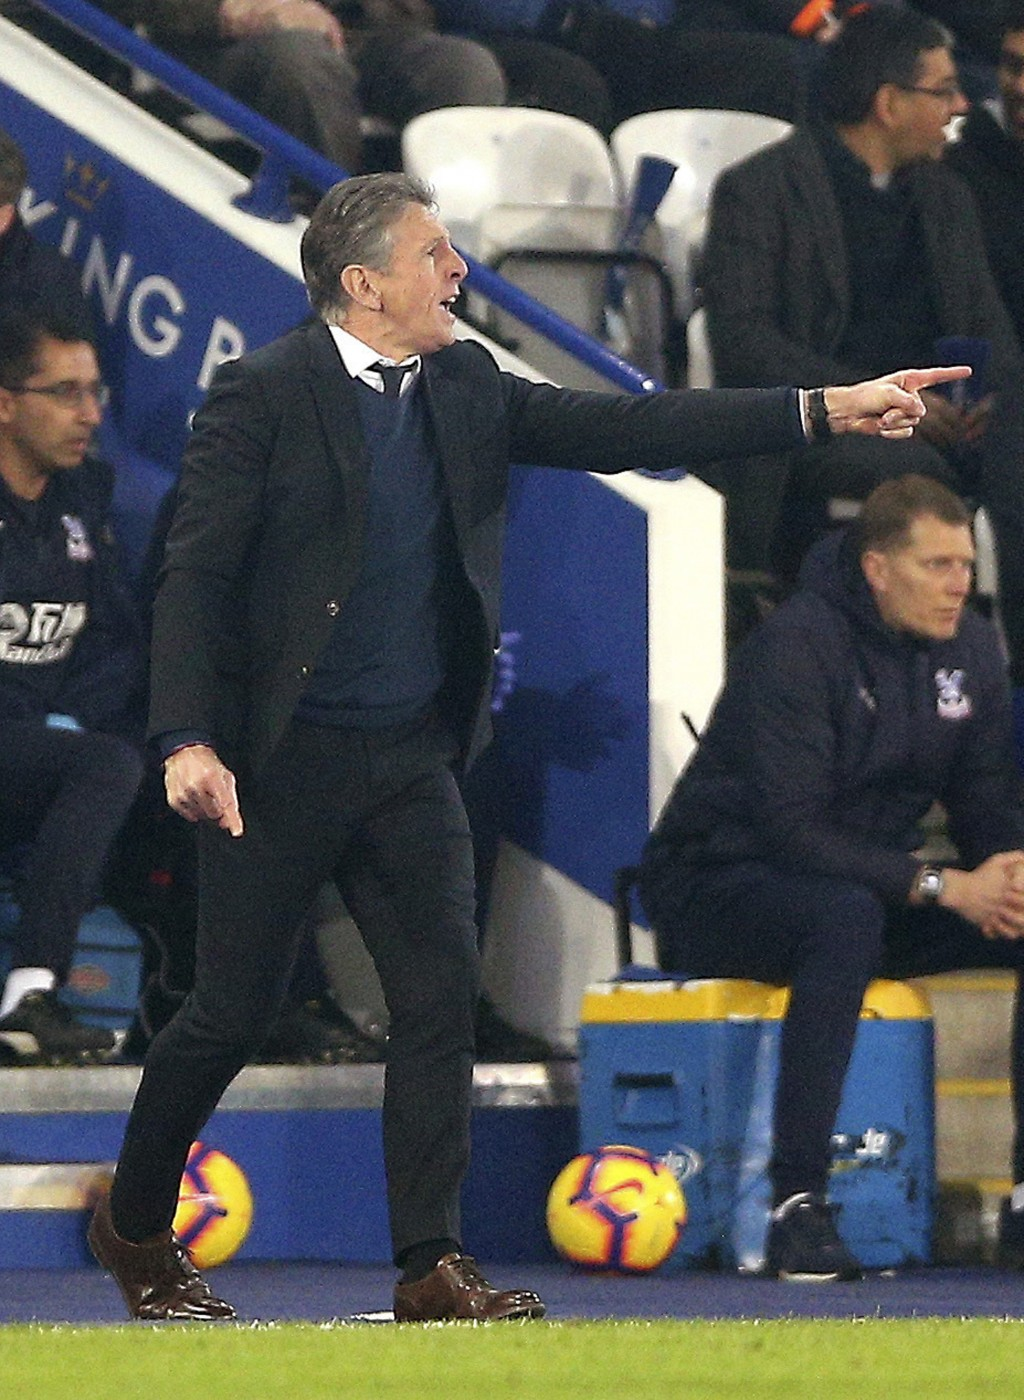 Leicester City manager Claude Puel gestures on the touchline during the match against Crystal Palace during their English Premier League soccer match ...